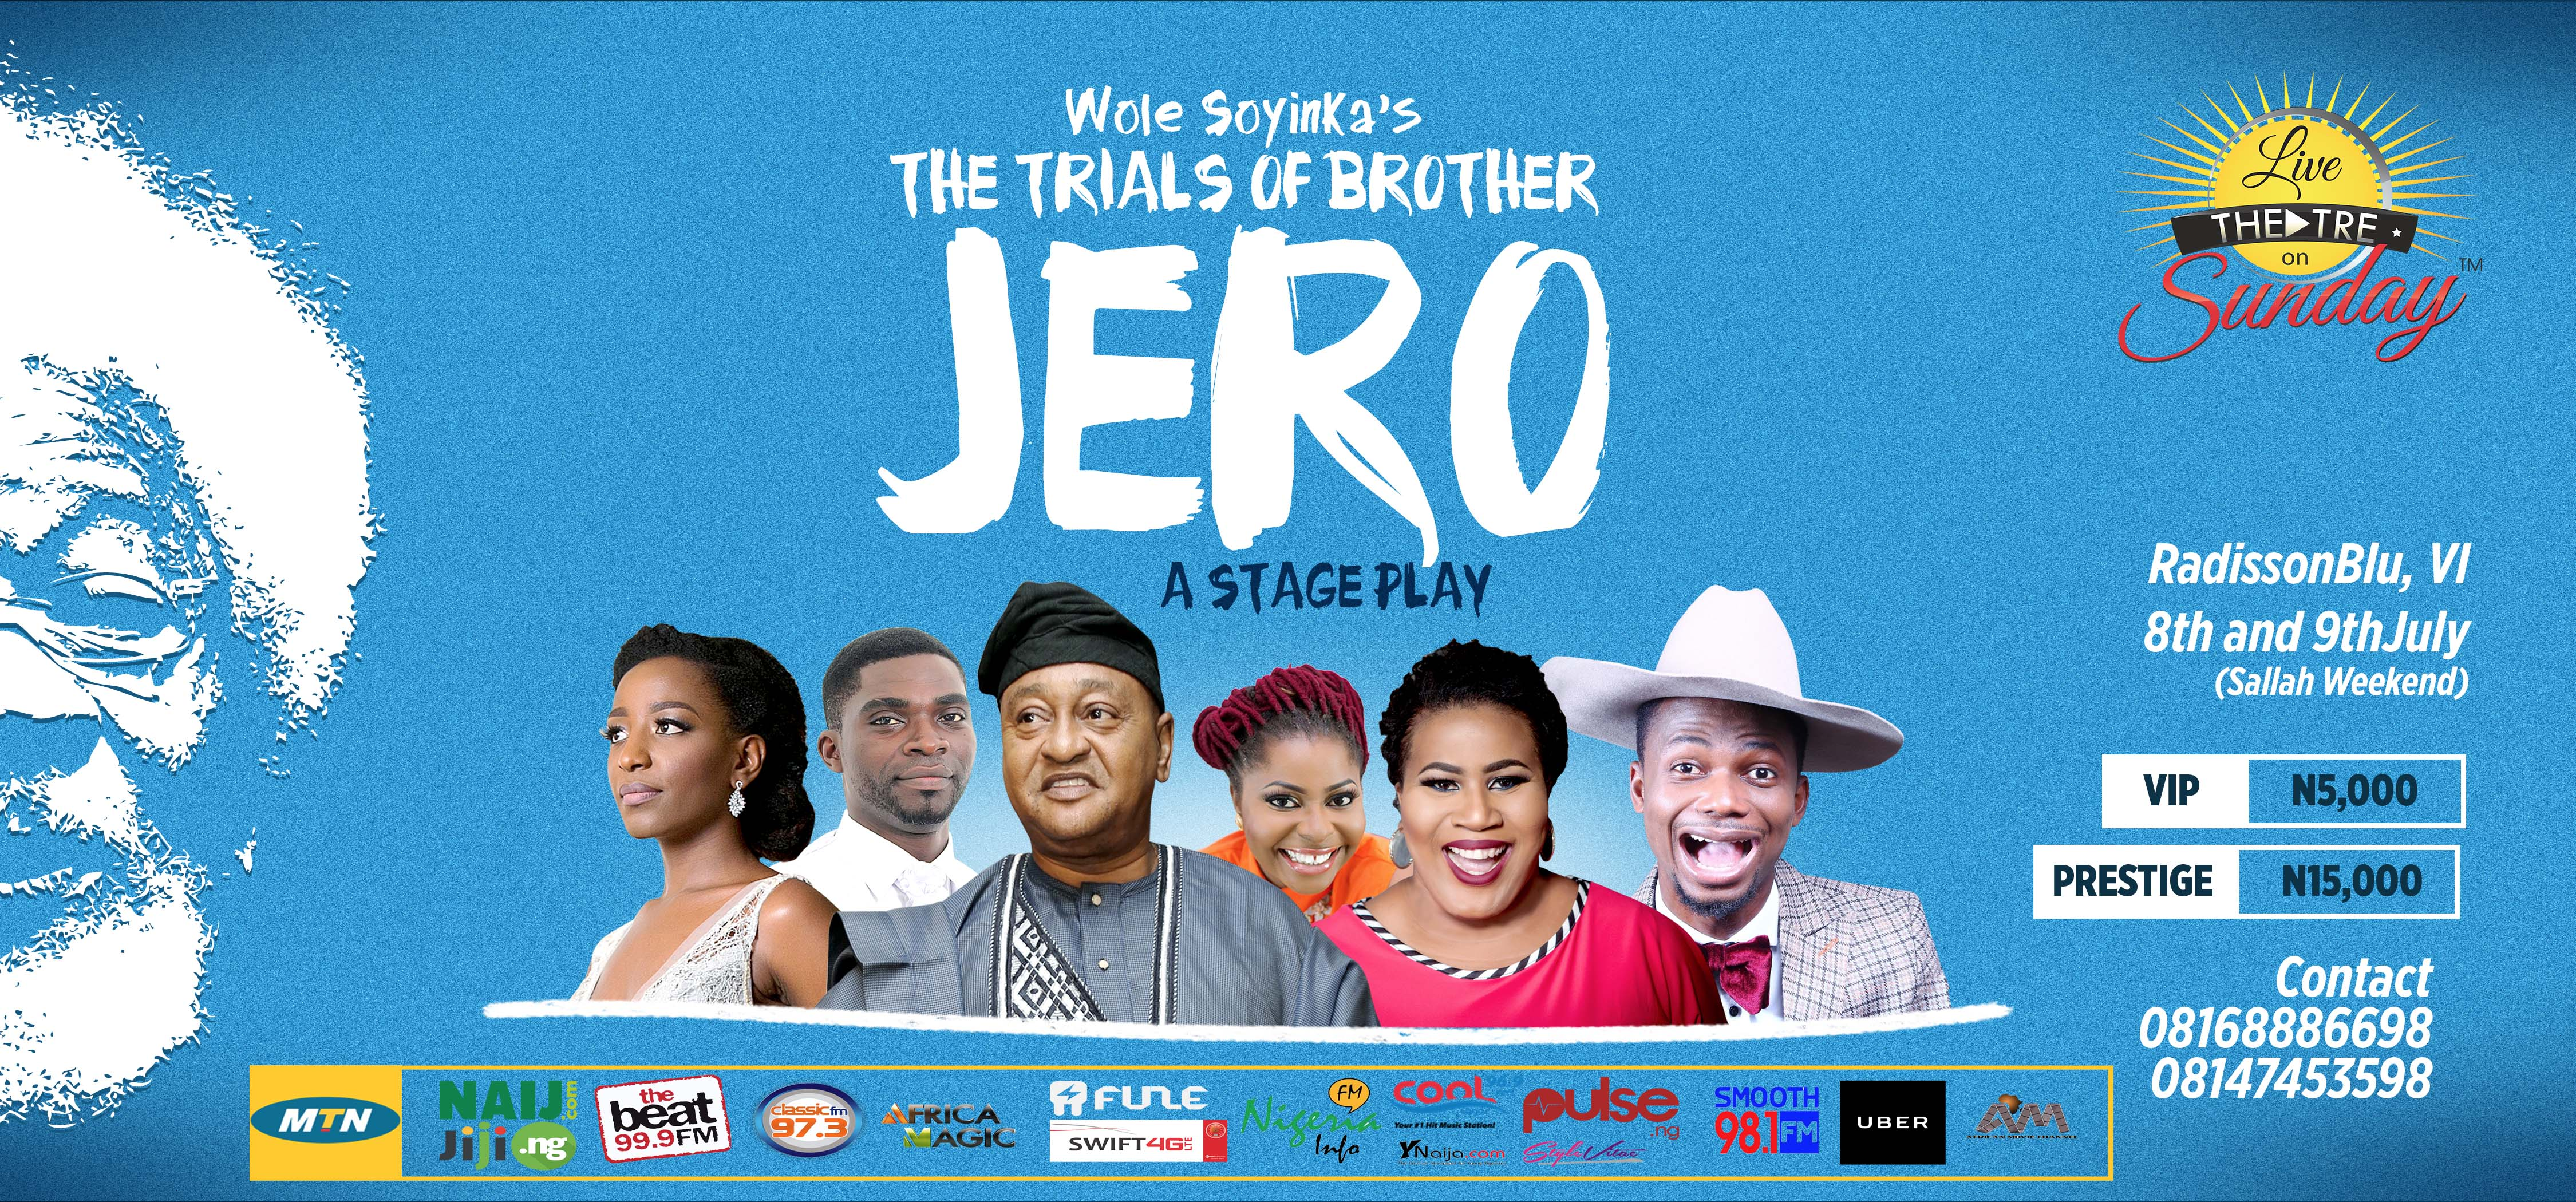 the trials of brother jero The trials of brother jero wole soyinka 1960 introduction author biography plot summary characters themes style historical context critical overview criticism.